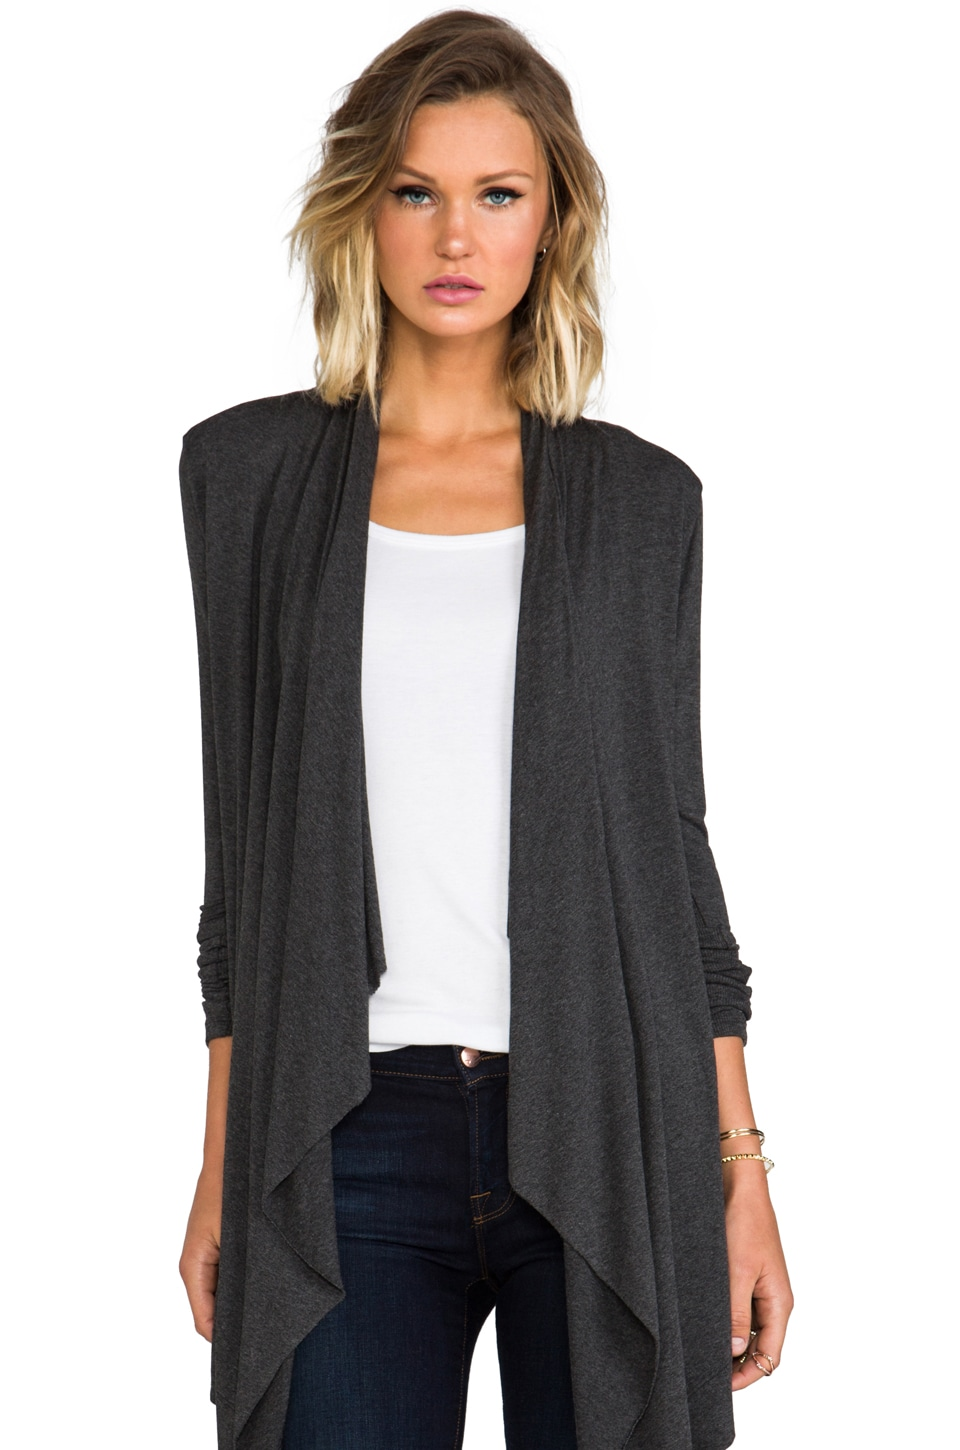 Feel the Piece Blake Sweater Wrap in Charcoal